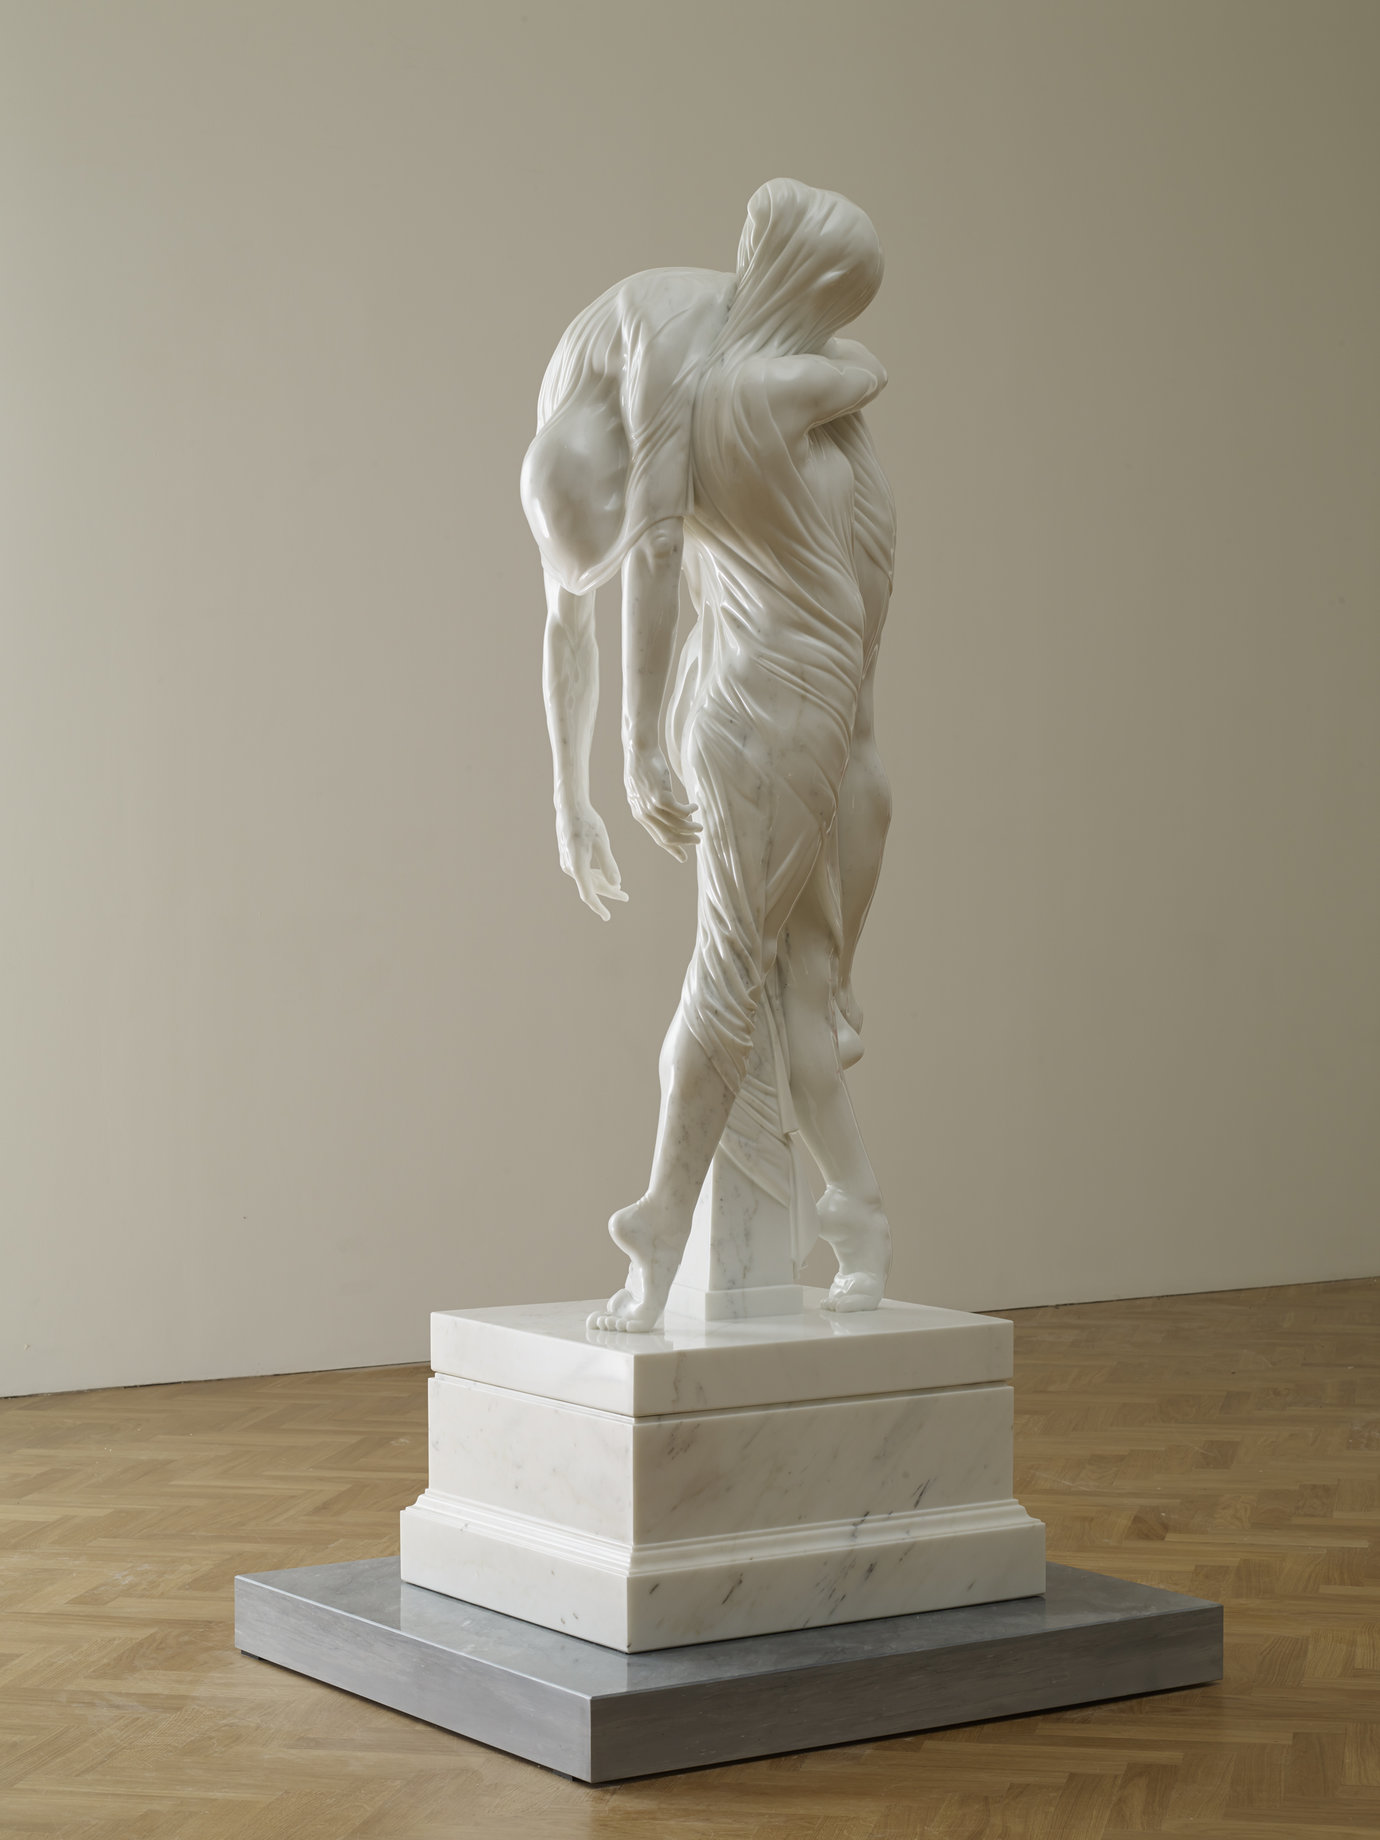 ", 2013. Statuary white marble sculpture and base, Bardiglio marble plinth, 217 cm x 109 cm x 99.5 cm (85-7/16"" x 42-15/16"" x 39-3/16"")."